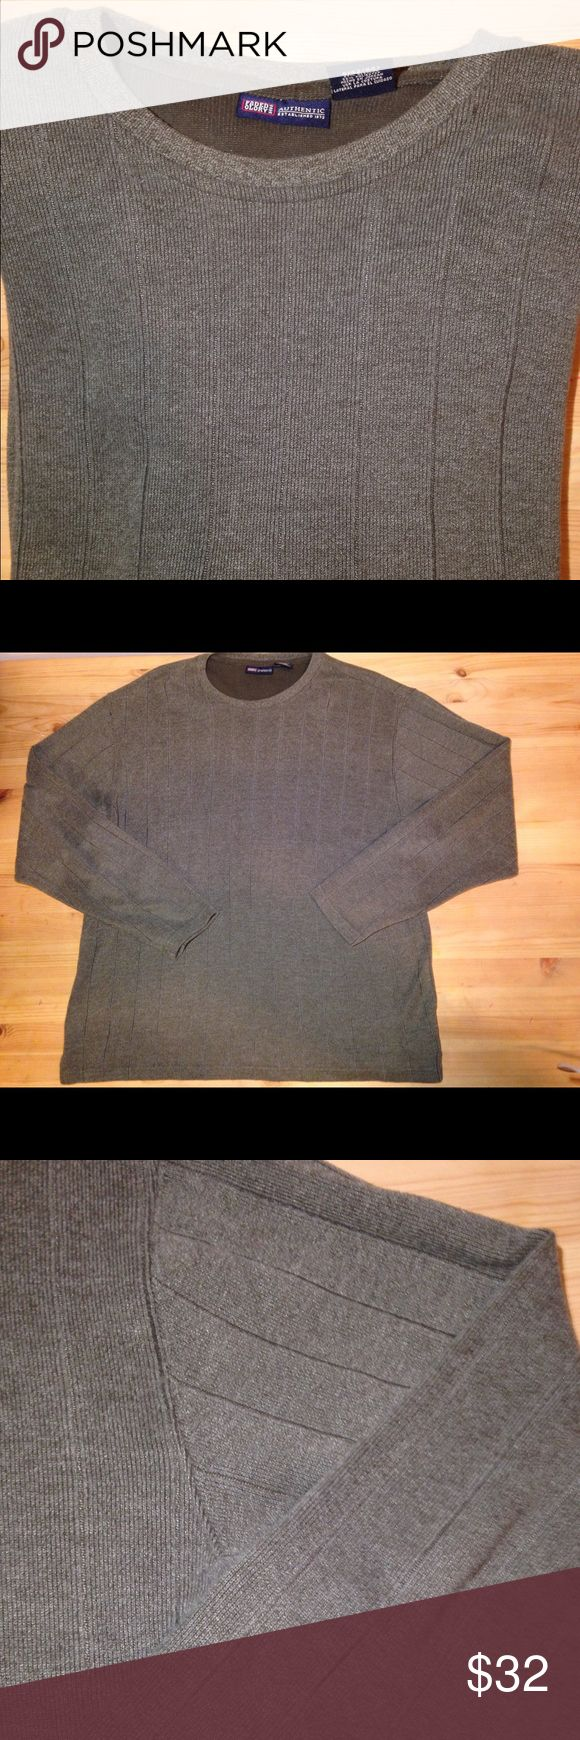 ❤😍2 HOUR SALE Large Charcoal Pullover ❤️Men's Large Charcoal Pullover with sewed stripe design•weaving is similar to Patagonia better sweater but it's more of a lighter sweatshirt rather than thick fleece jacket• 67% cotton 33% polyester •long sleeve • comfortable • any occasion • NWOT Faded Glory Sweaters